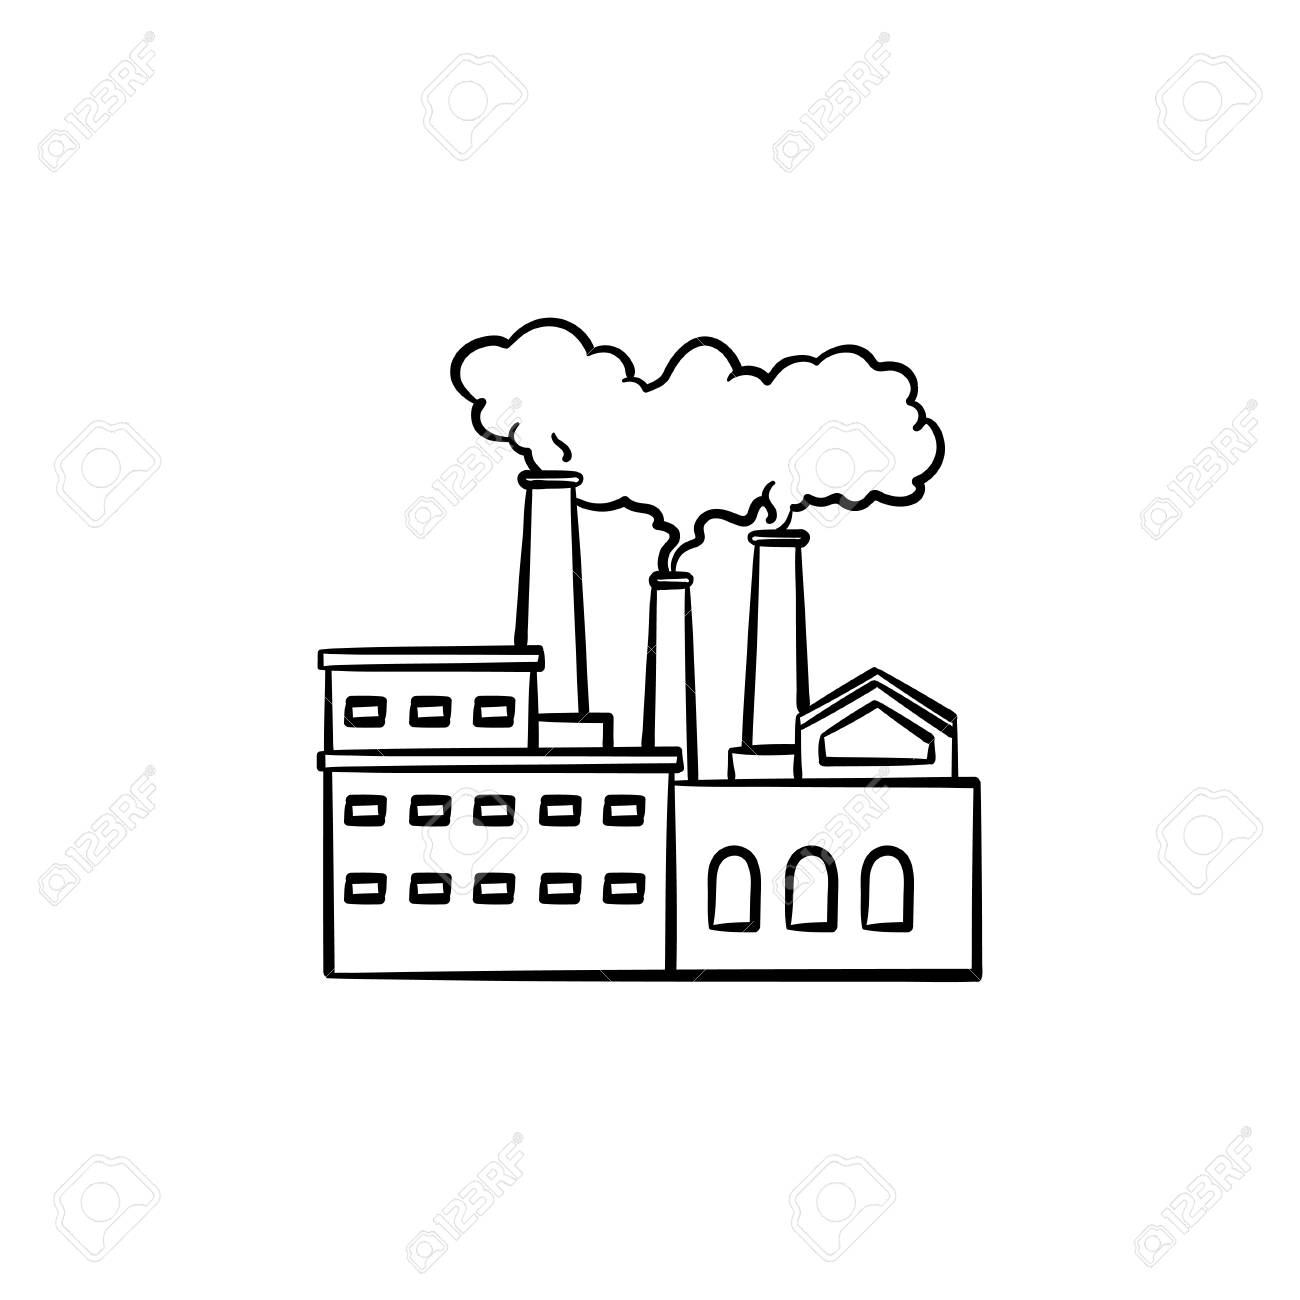 Factory hand drawn outline doodle icon air pollution by smoke